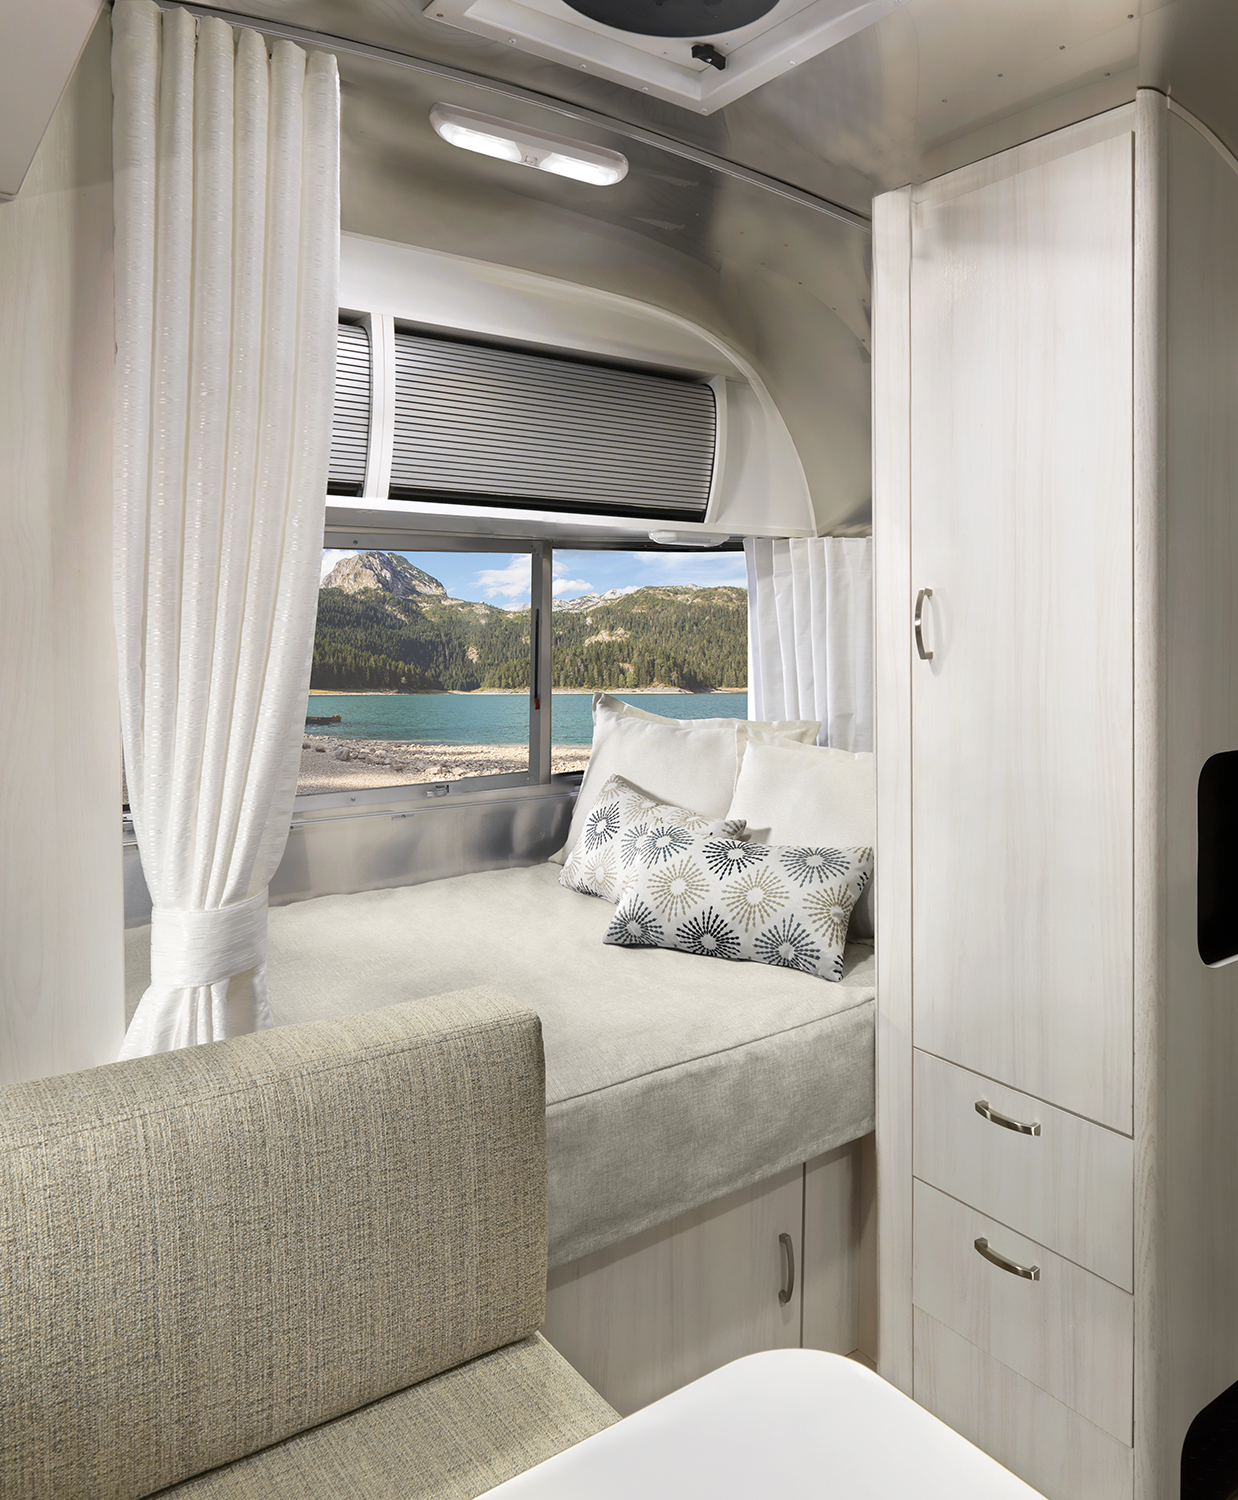 Airstream's New Bambi Trailer Targets Newcomers at $49K